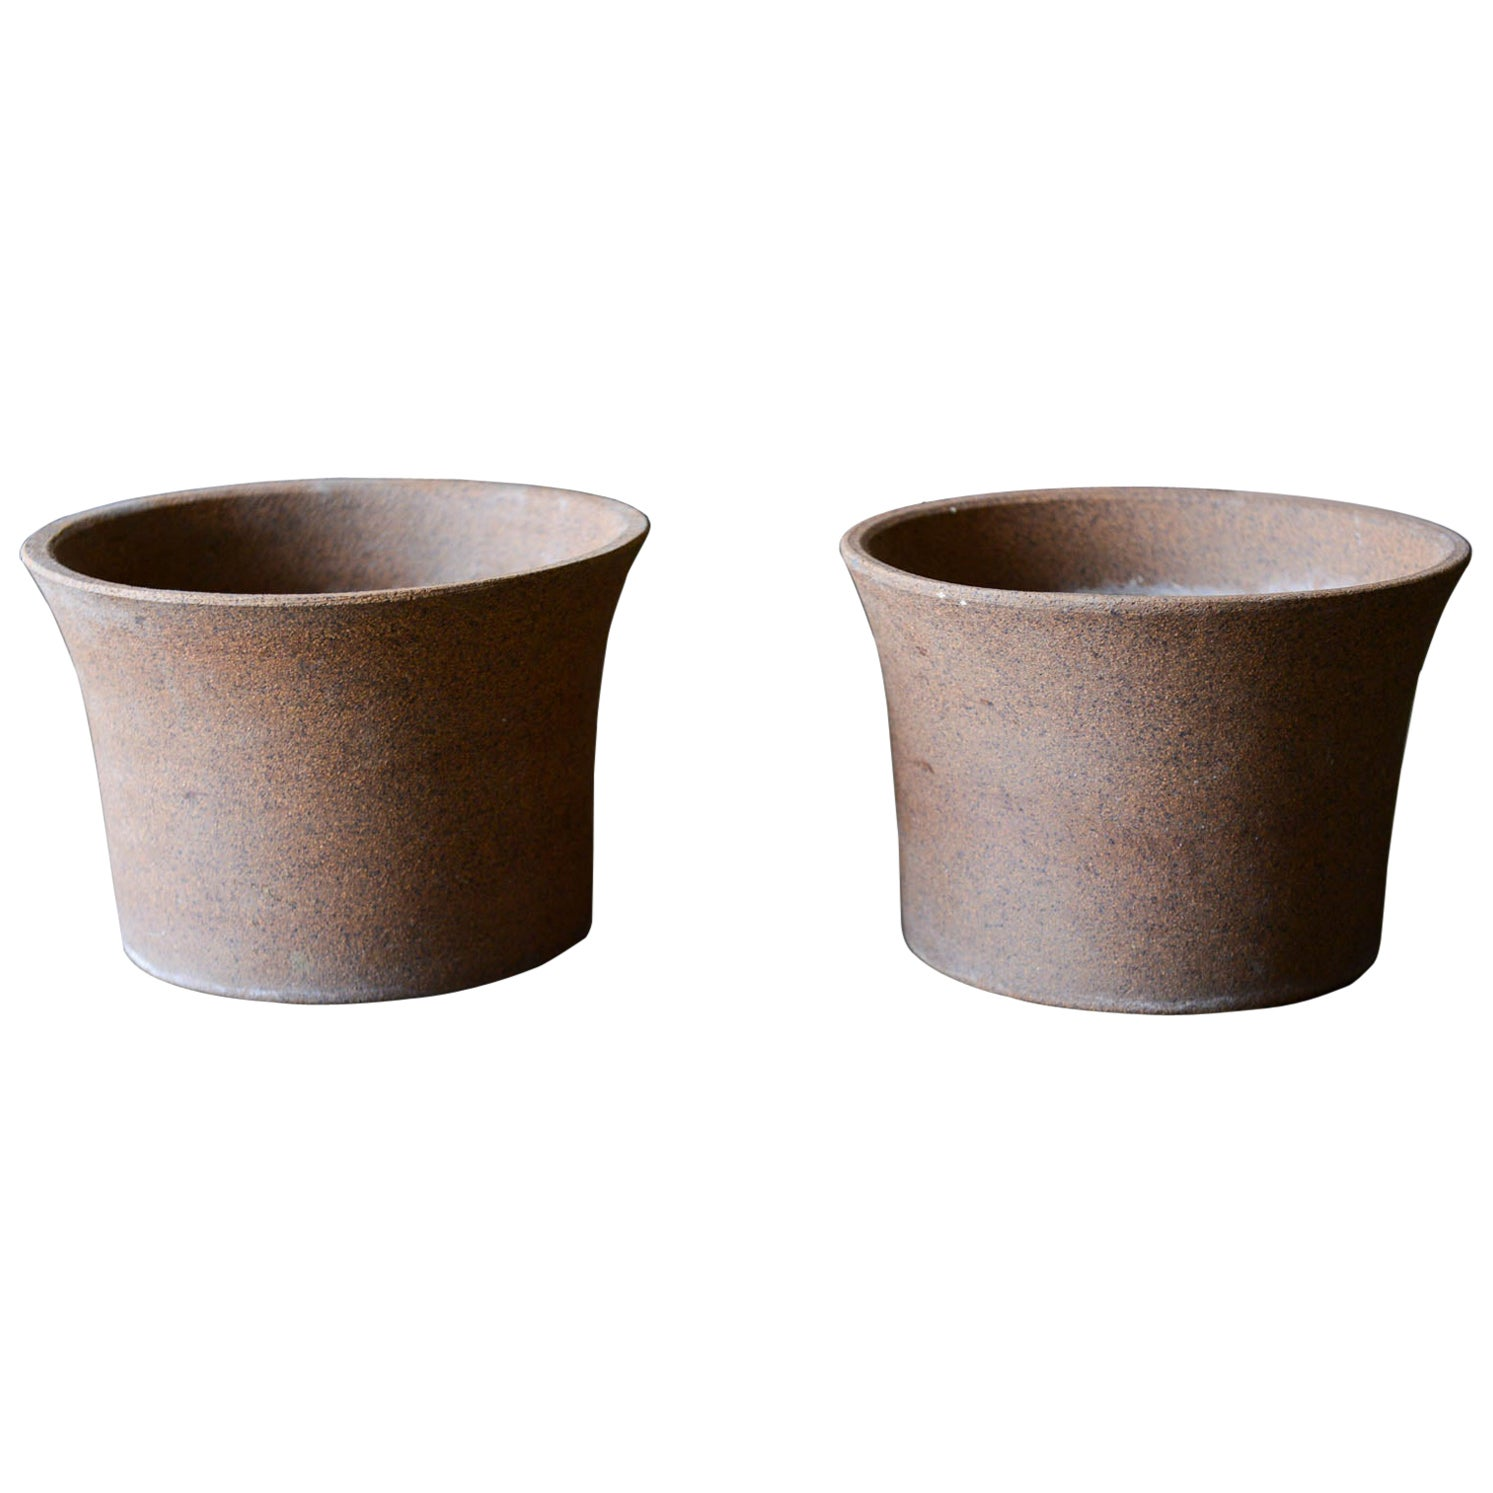 Marilyn Kay Austin for Architectural Pottery Unglazed Vessels, Pair, circa 1970